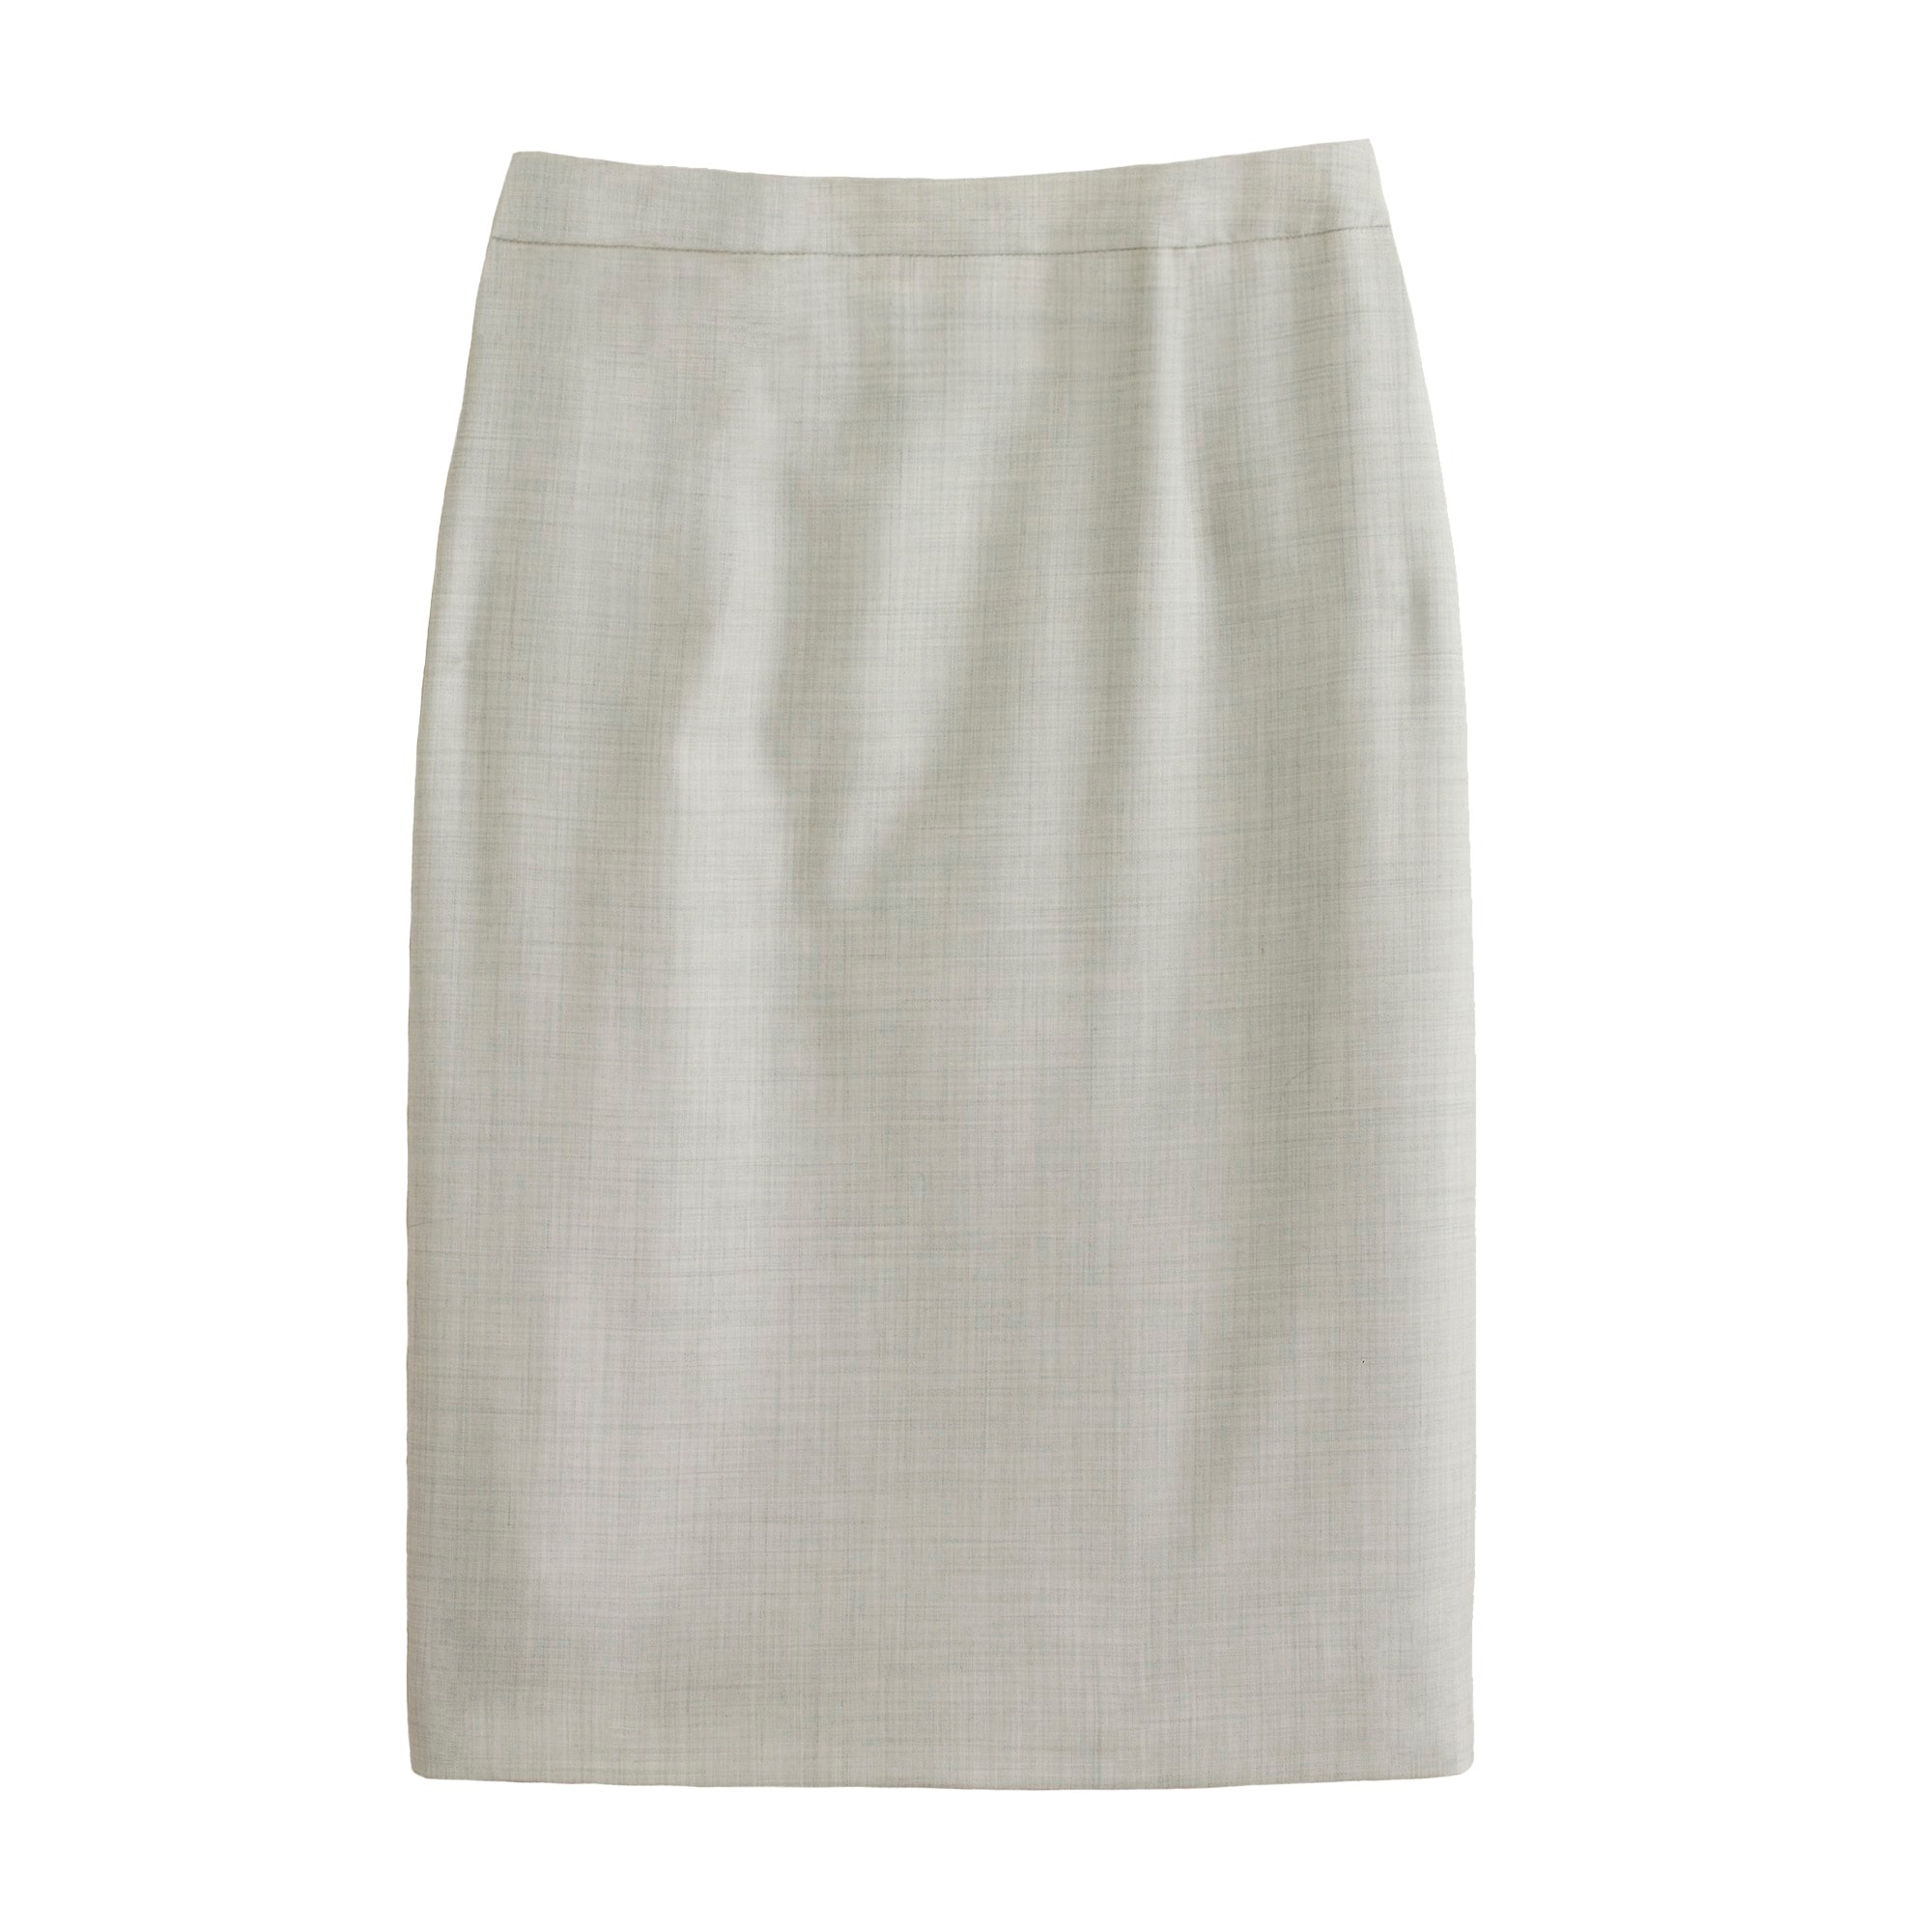 Petite pencil skirt in Super 120s wool